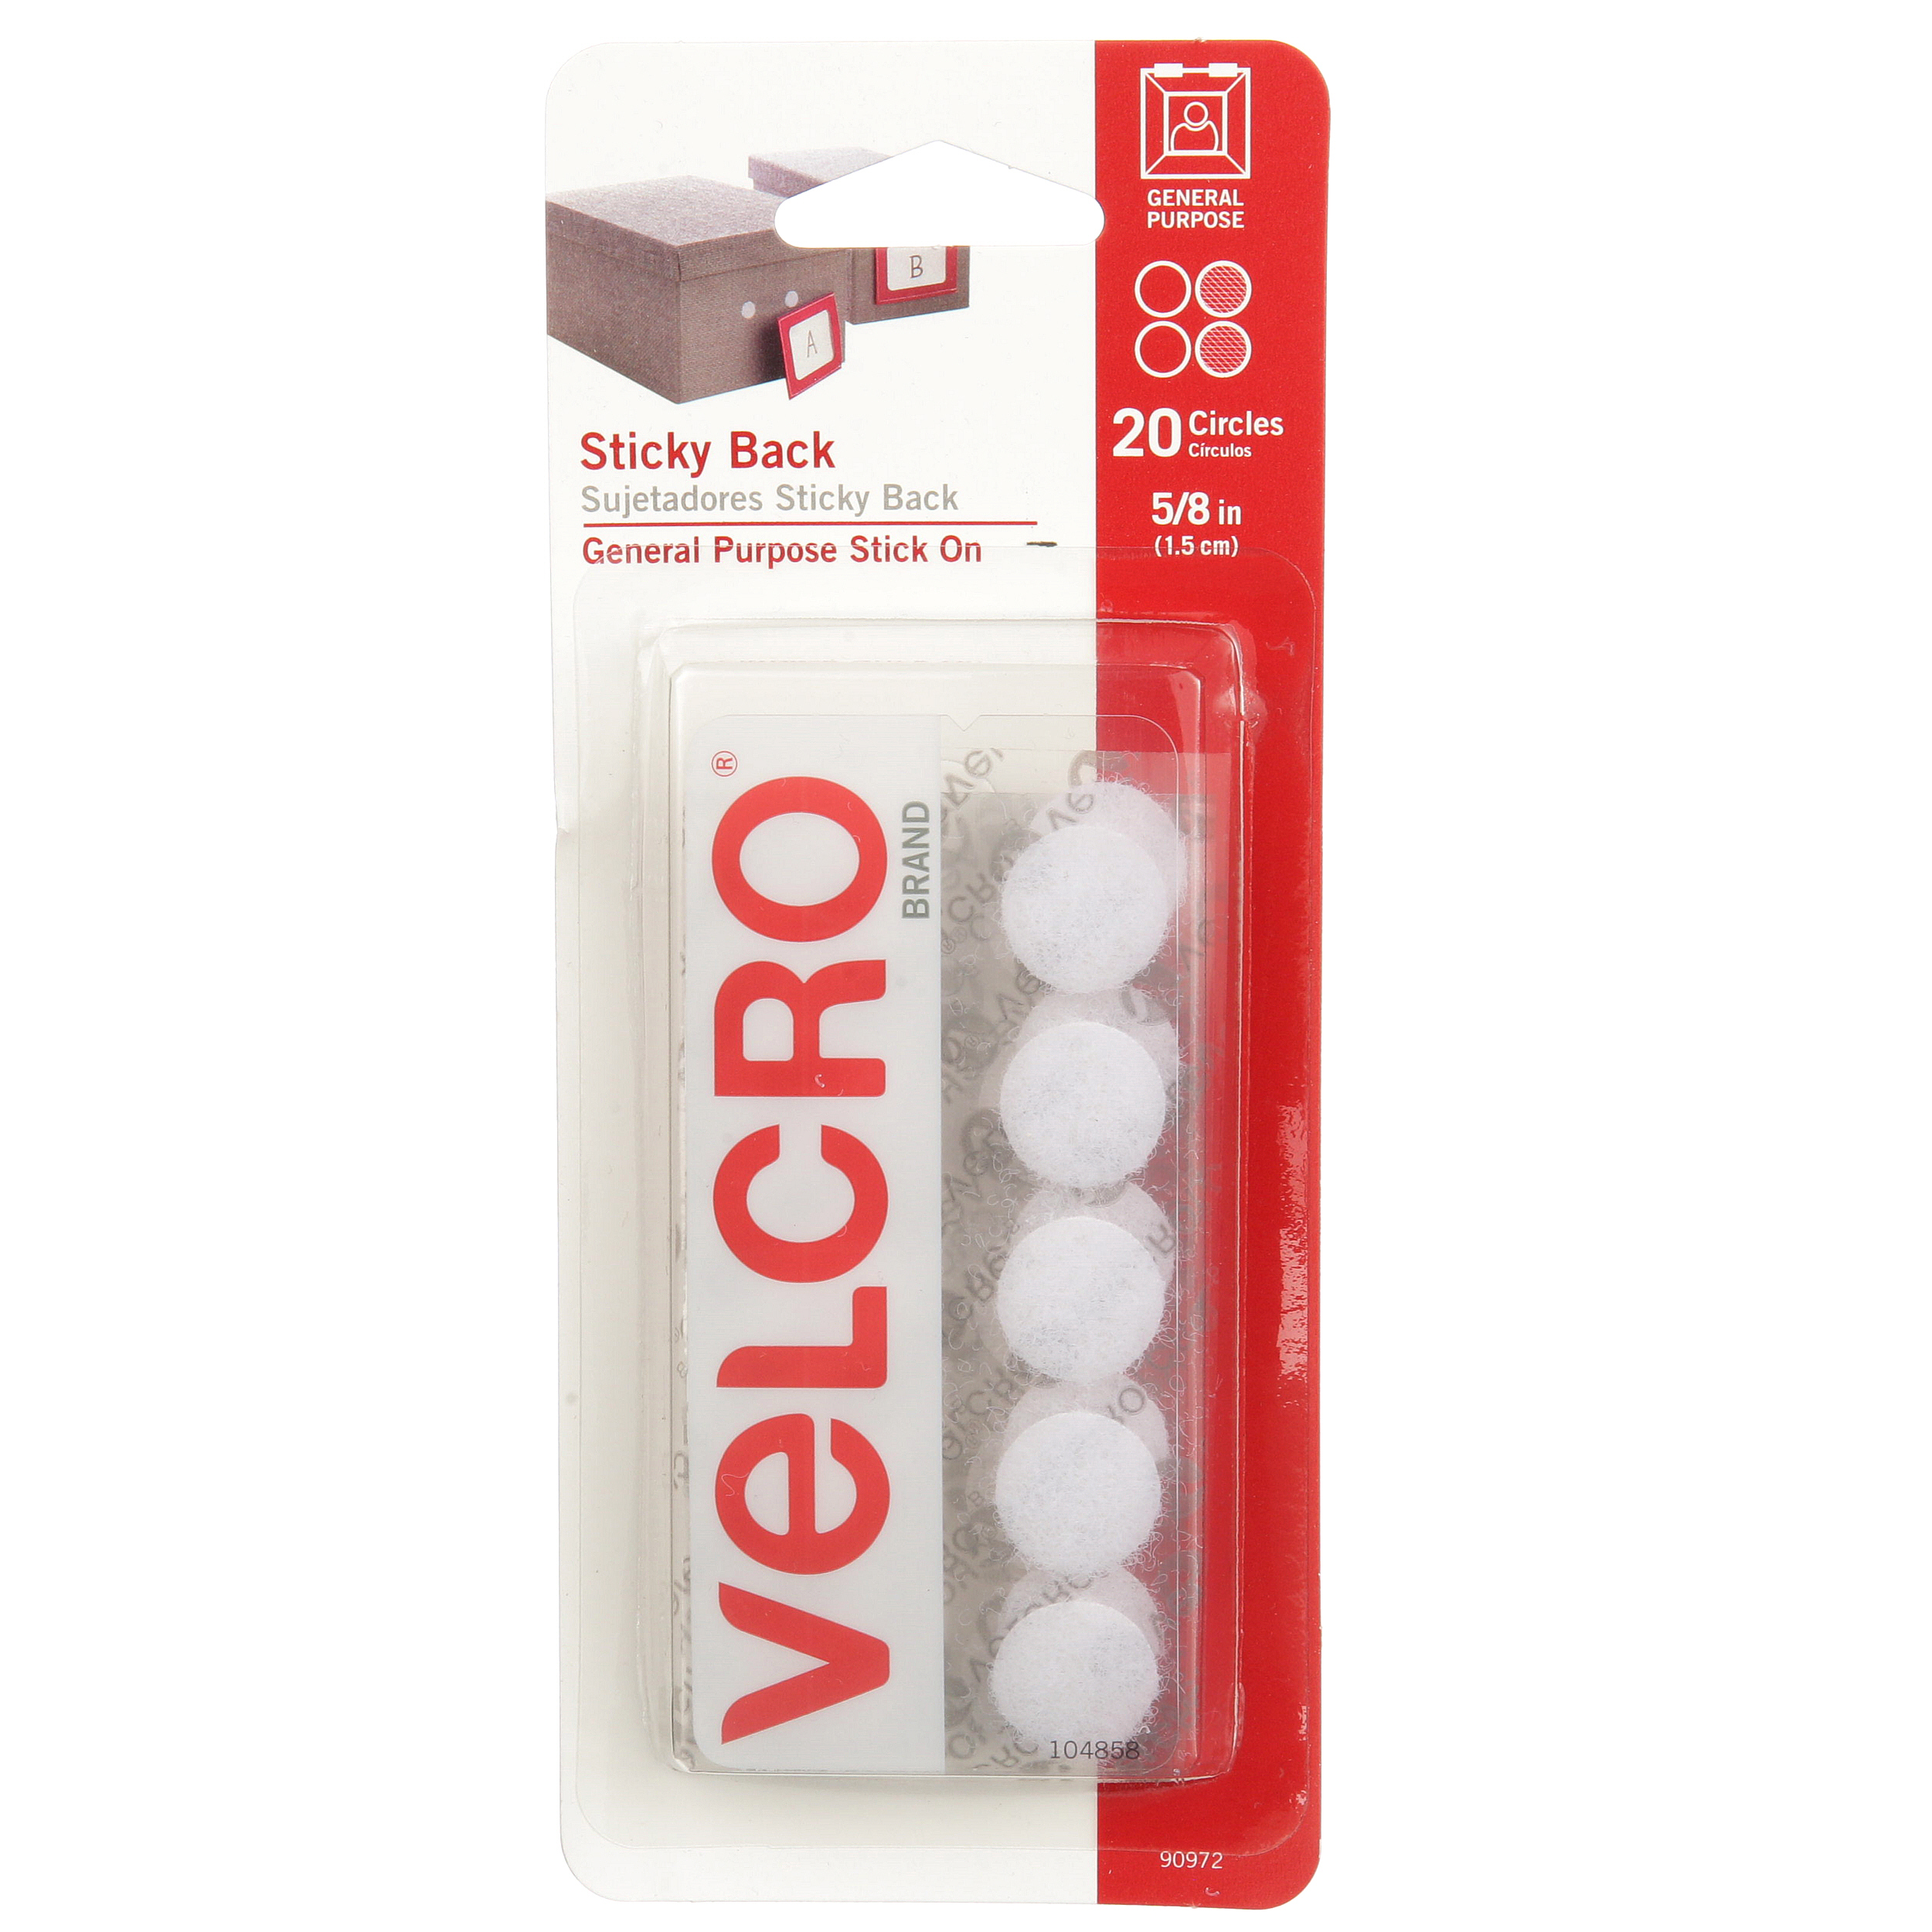 VELCRO® Brand Sticky Back 5/8in Circles White 20 ct